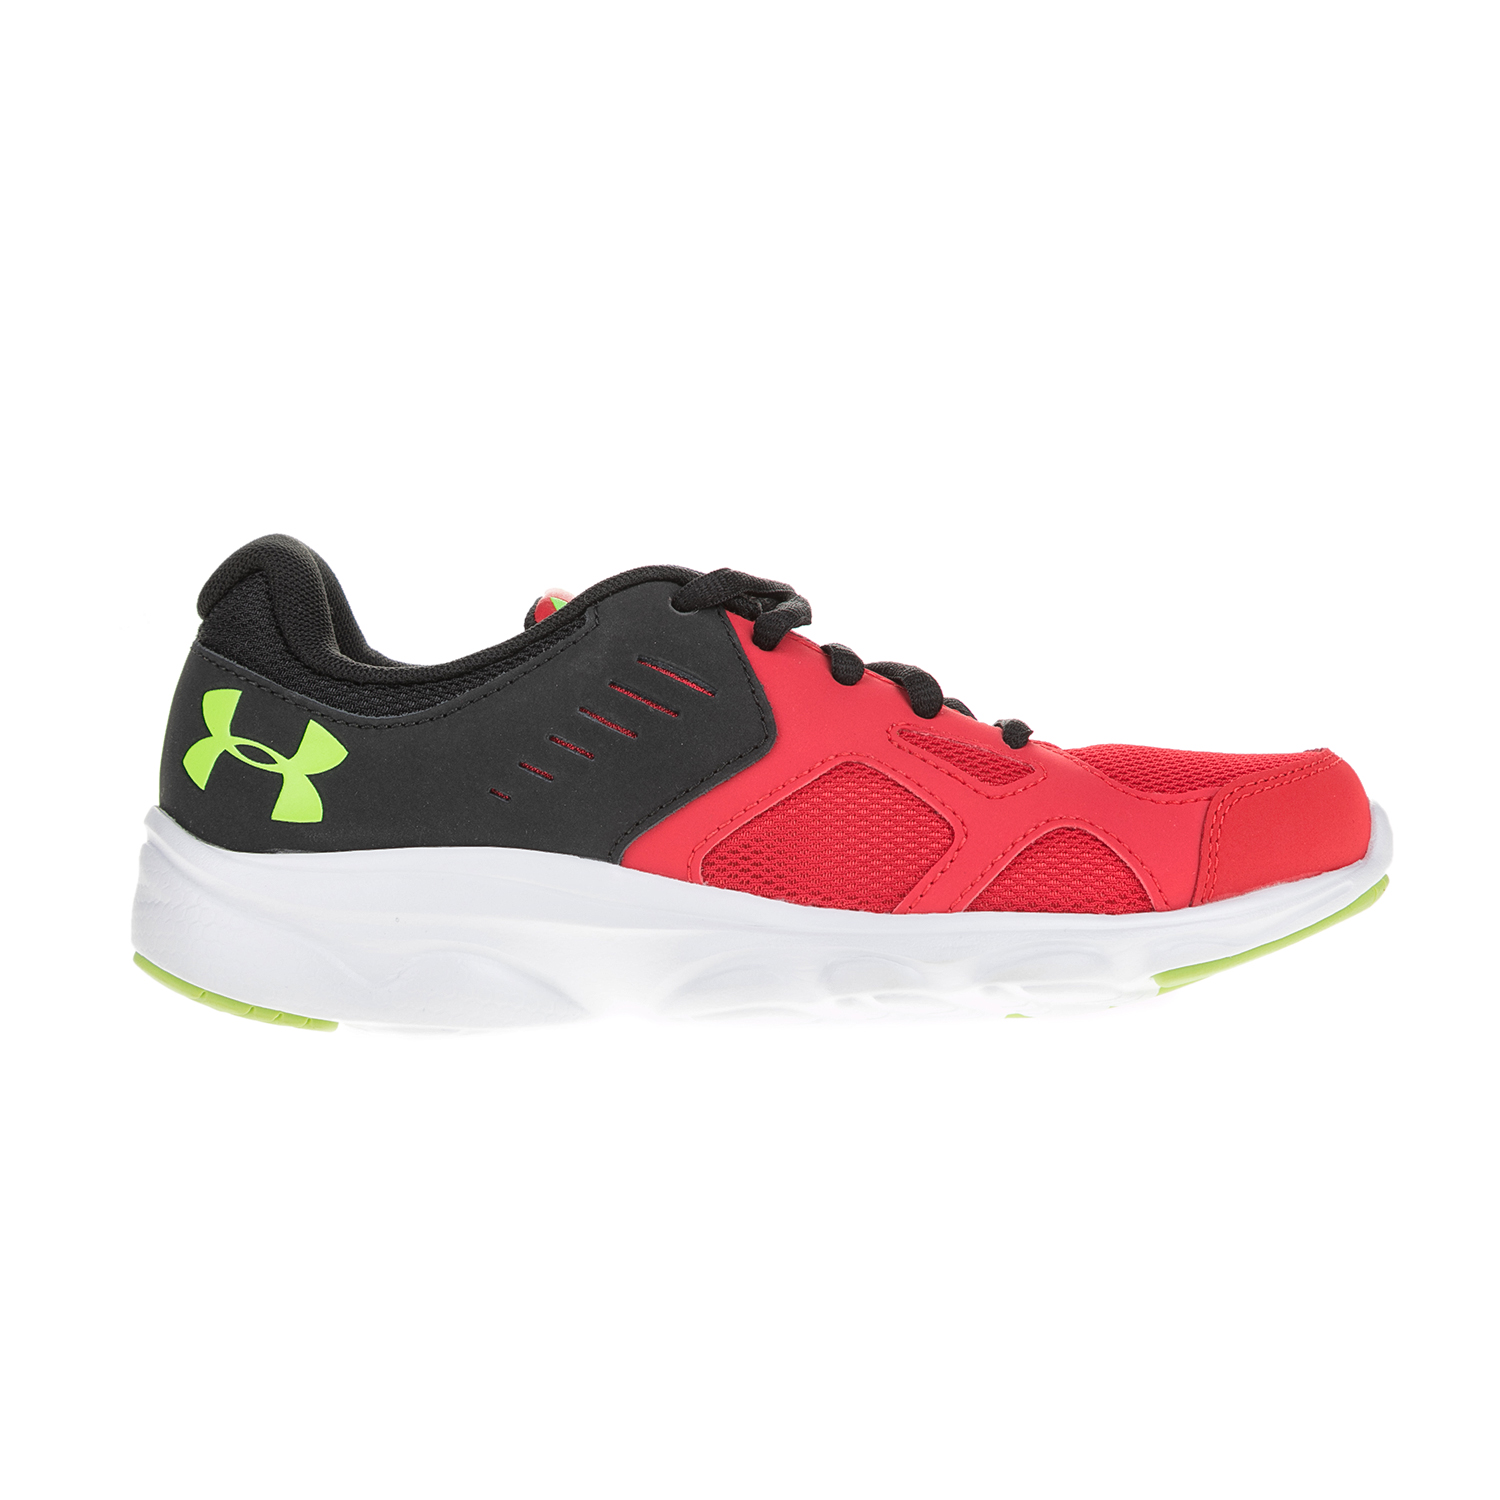 UNDER ARMOUR – Αγορίστικα αθλητικά παπούτσια UNDER ARMOUR BGS PACE RN κόκκινα